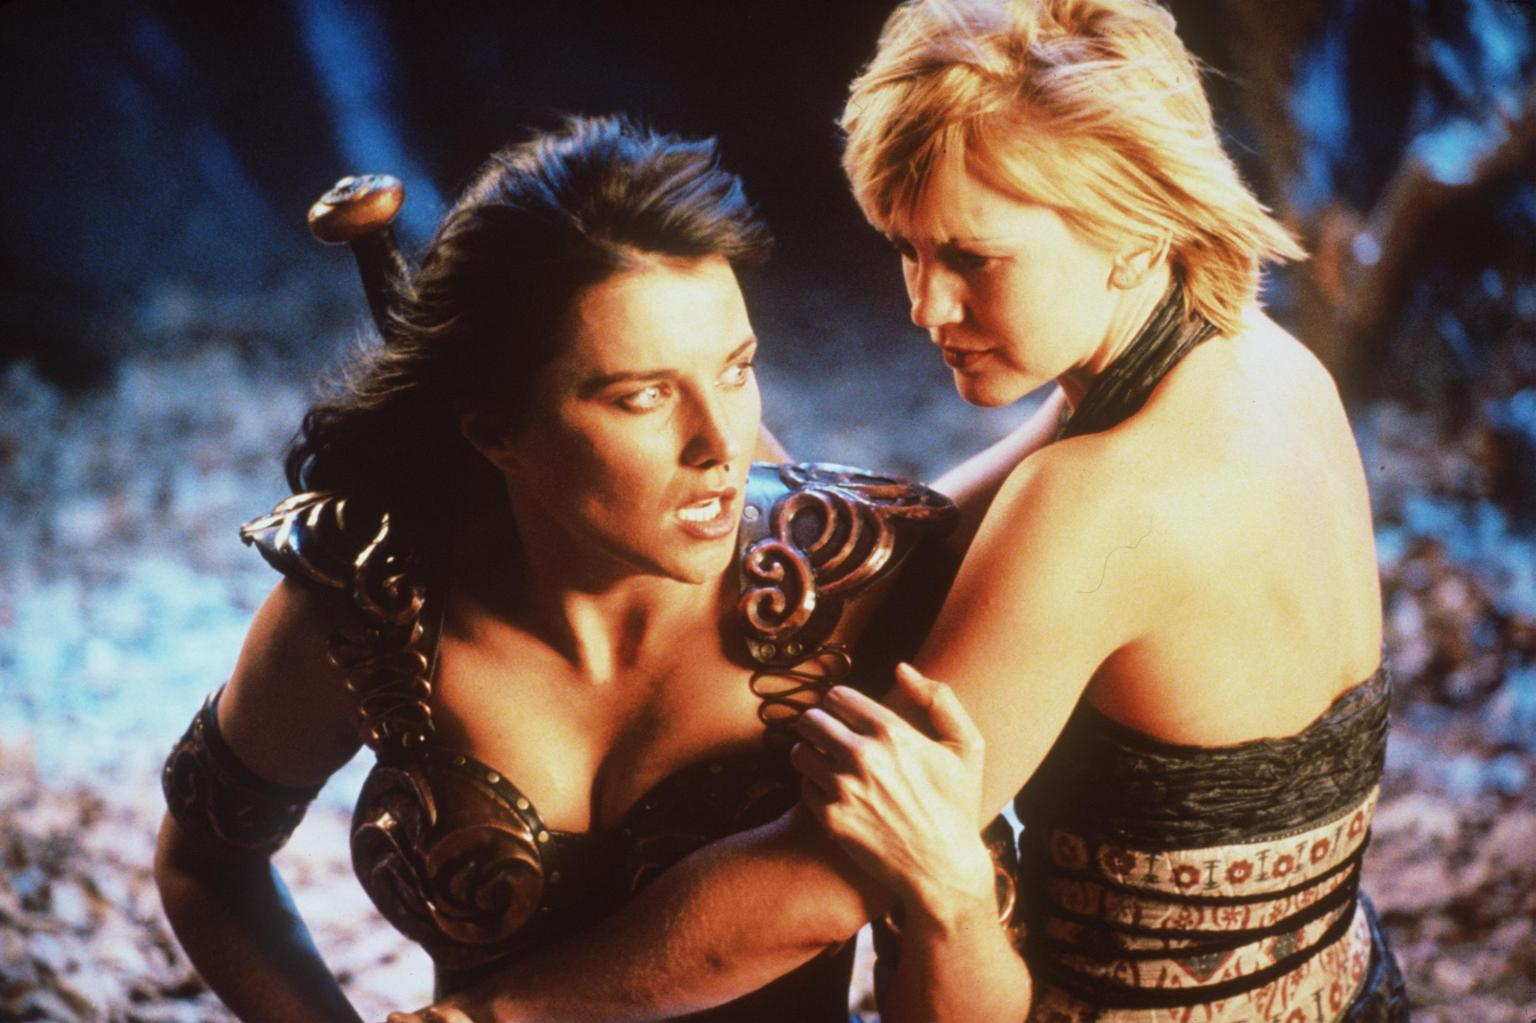 Lucy Lawless On How She'd Bring Back 'Xena' | HuffPost